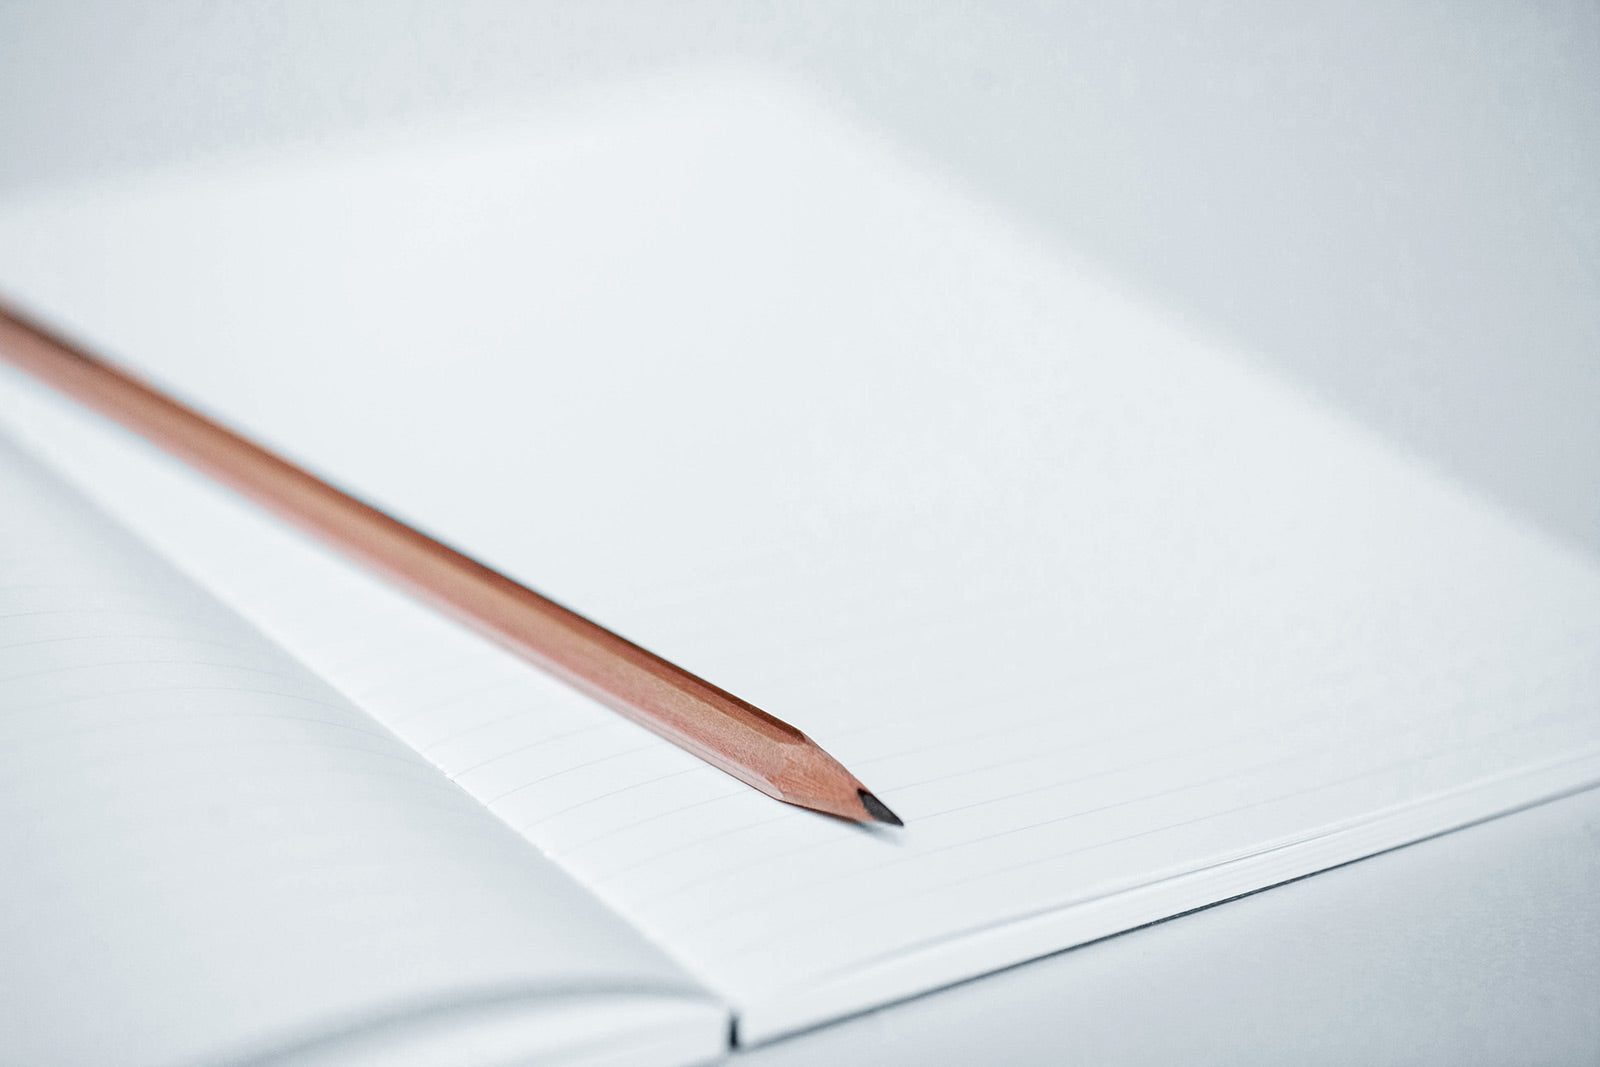 Open Notebook with a pencil